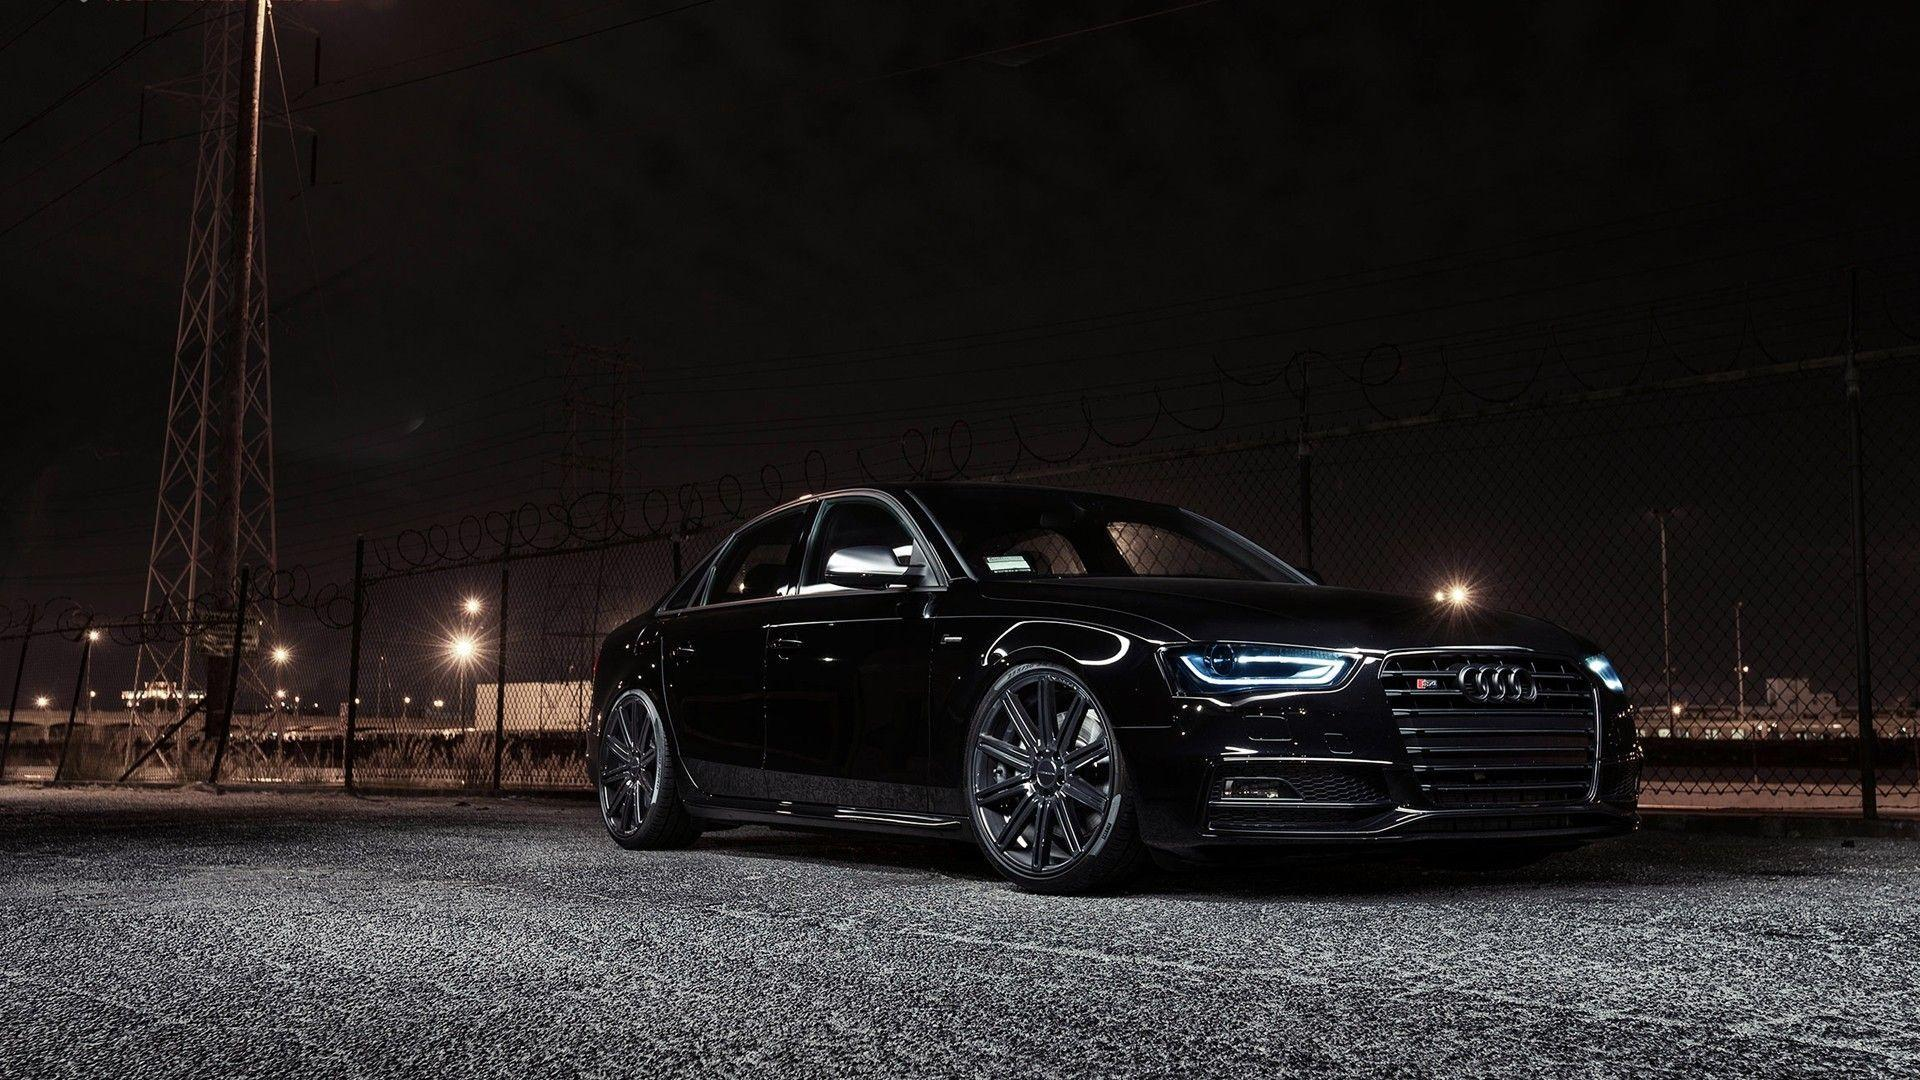 Best Audi Wallpapers in High Quality, Audi Backgrounds